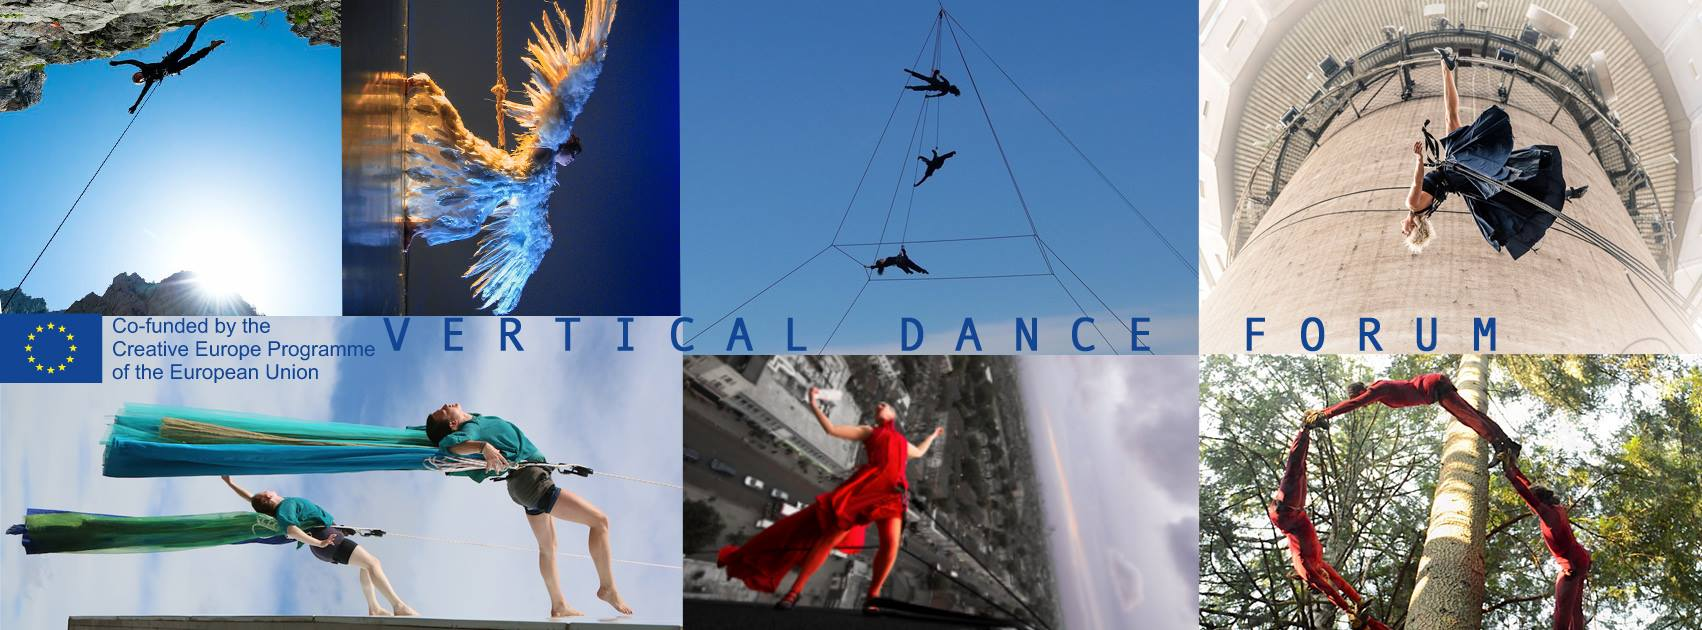 What's Vertical Dance Forum ?